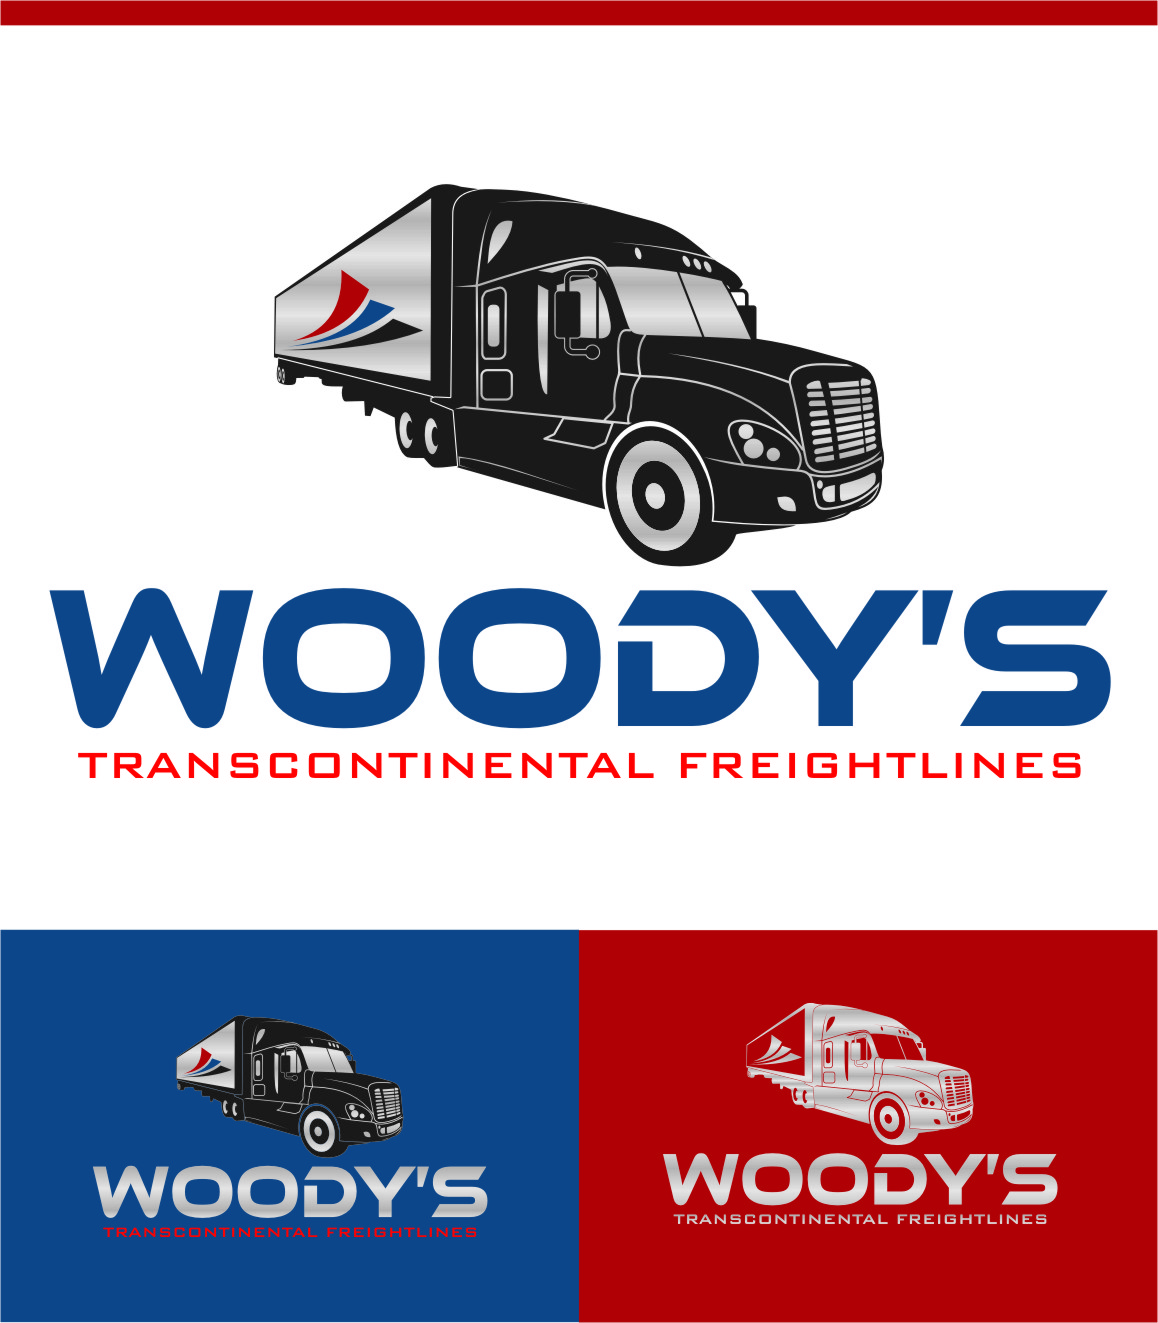 Logo Design by Ngepet_art - Entry No. 86 in the Logo Design Contest Creative Logo Design for Woody's Transcontinental Freightlines.